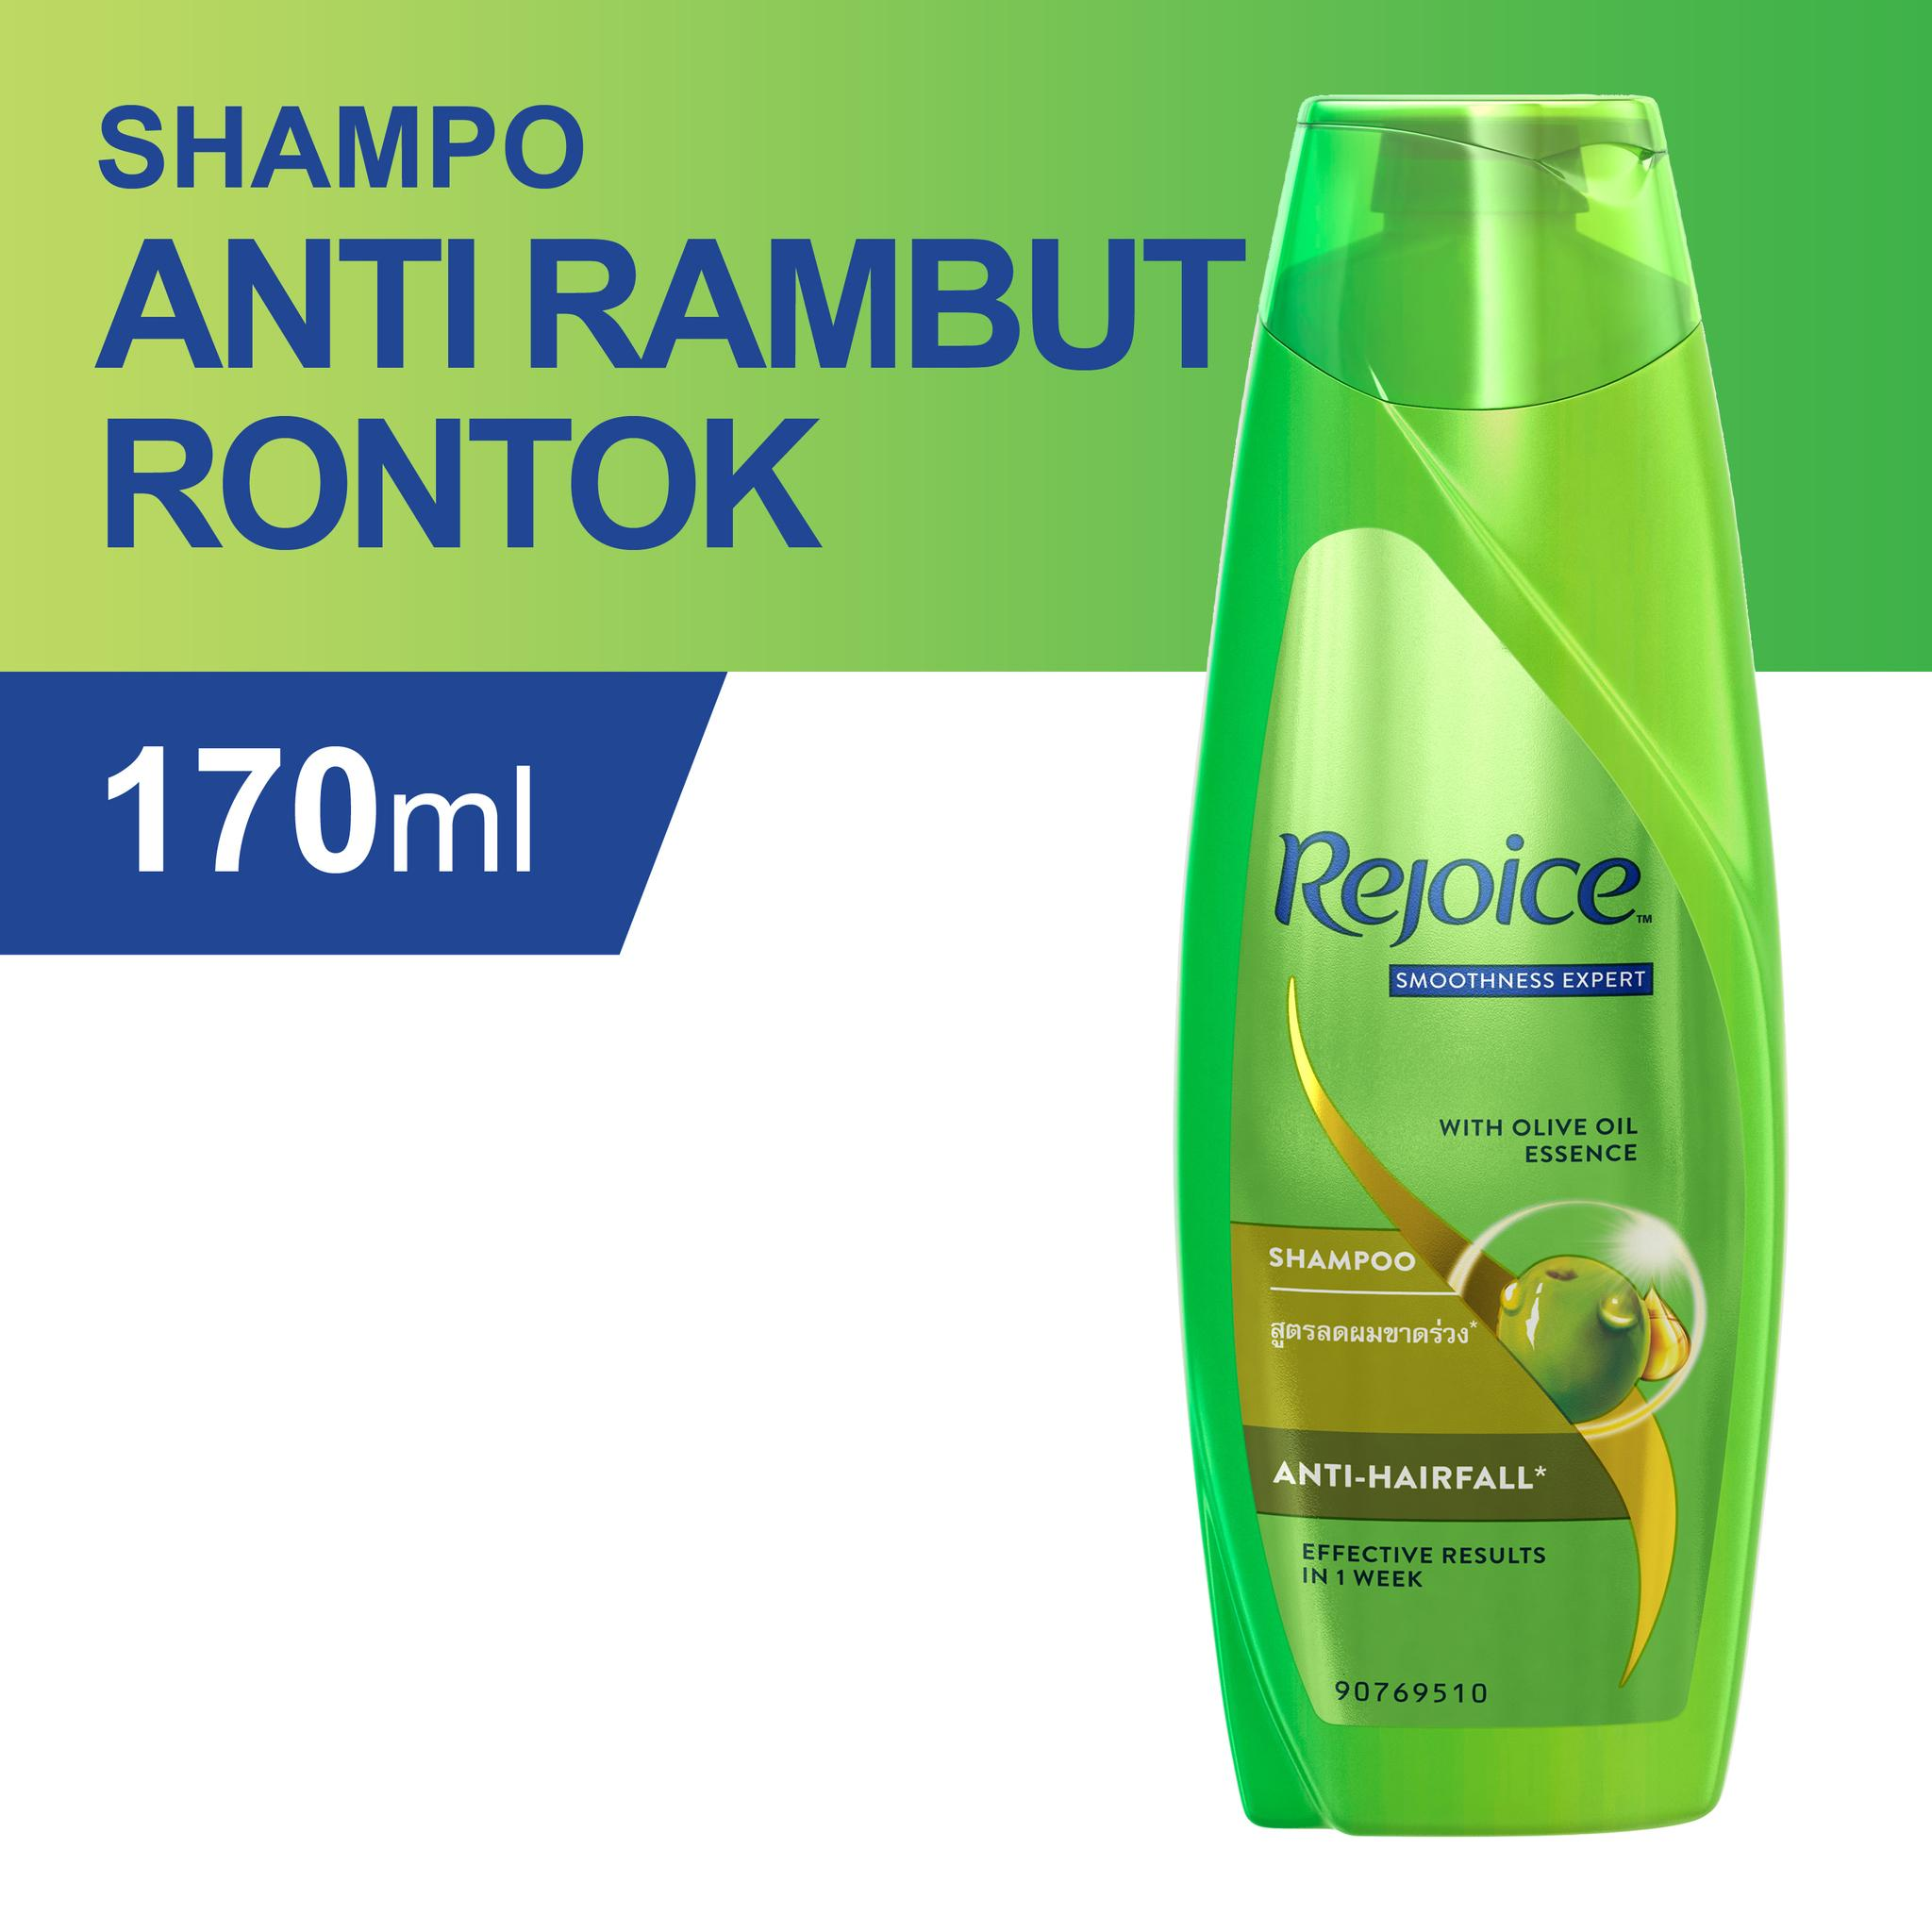 Referensi Harga Shampo Sunsilk 170ml November 2018 Mantap Twin Pack Shp Blk Shine Sd Rejoice Anti Rambut Rontok